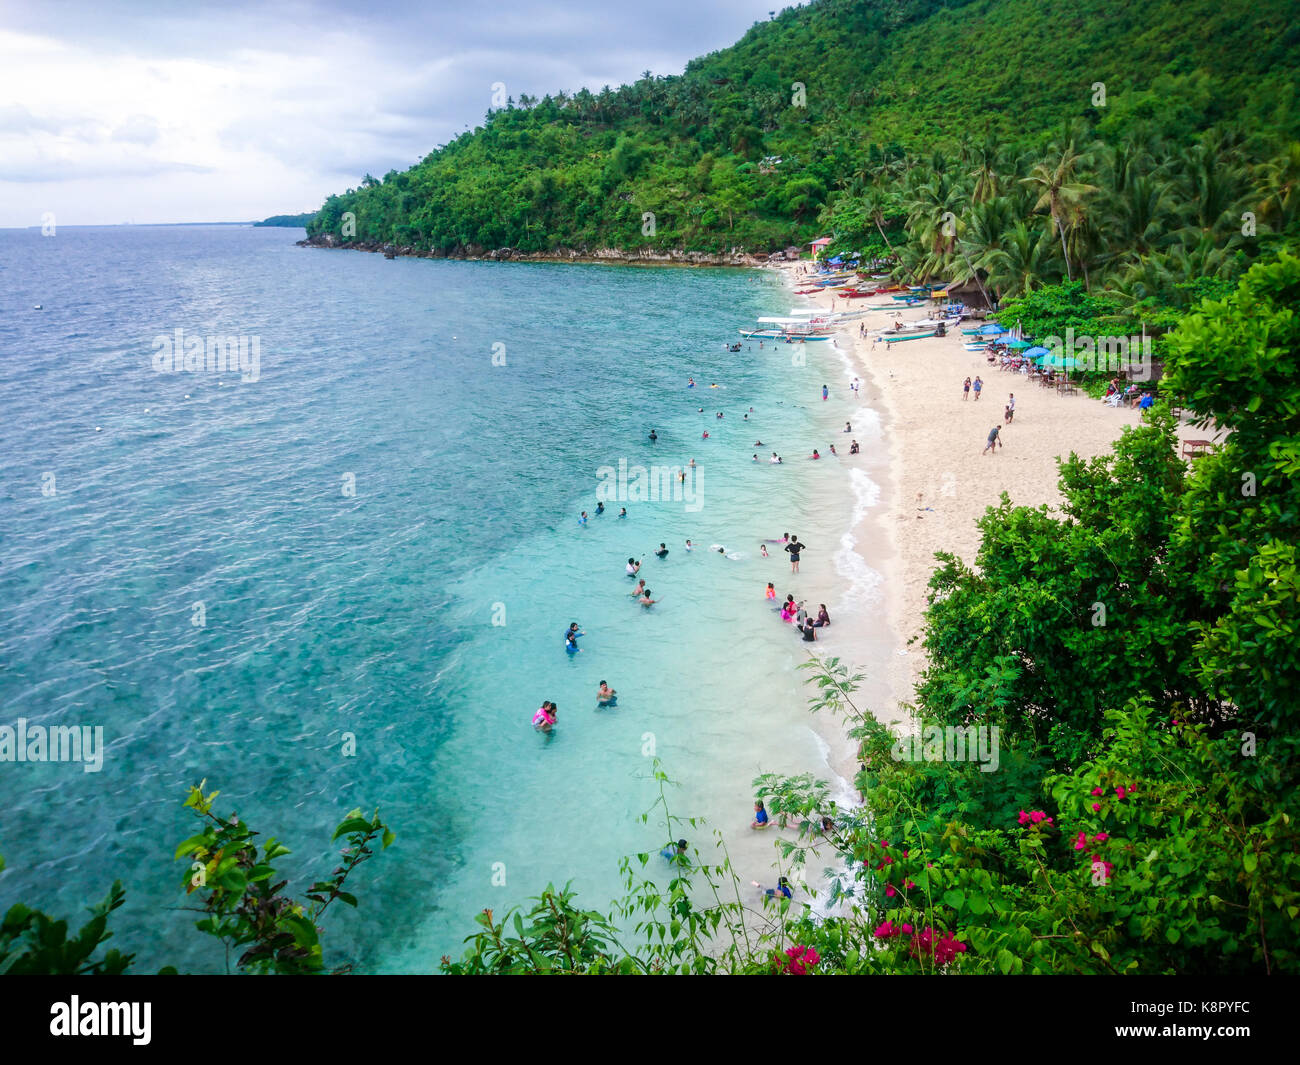 The clear blue waters and white fine sand beach in Hermit's Cove, Aloguinsan, at the southern part of Cebu, - Stock Image